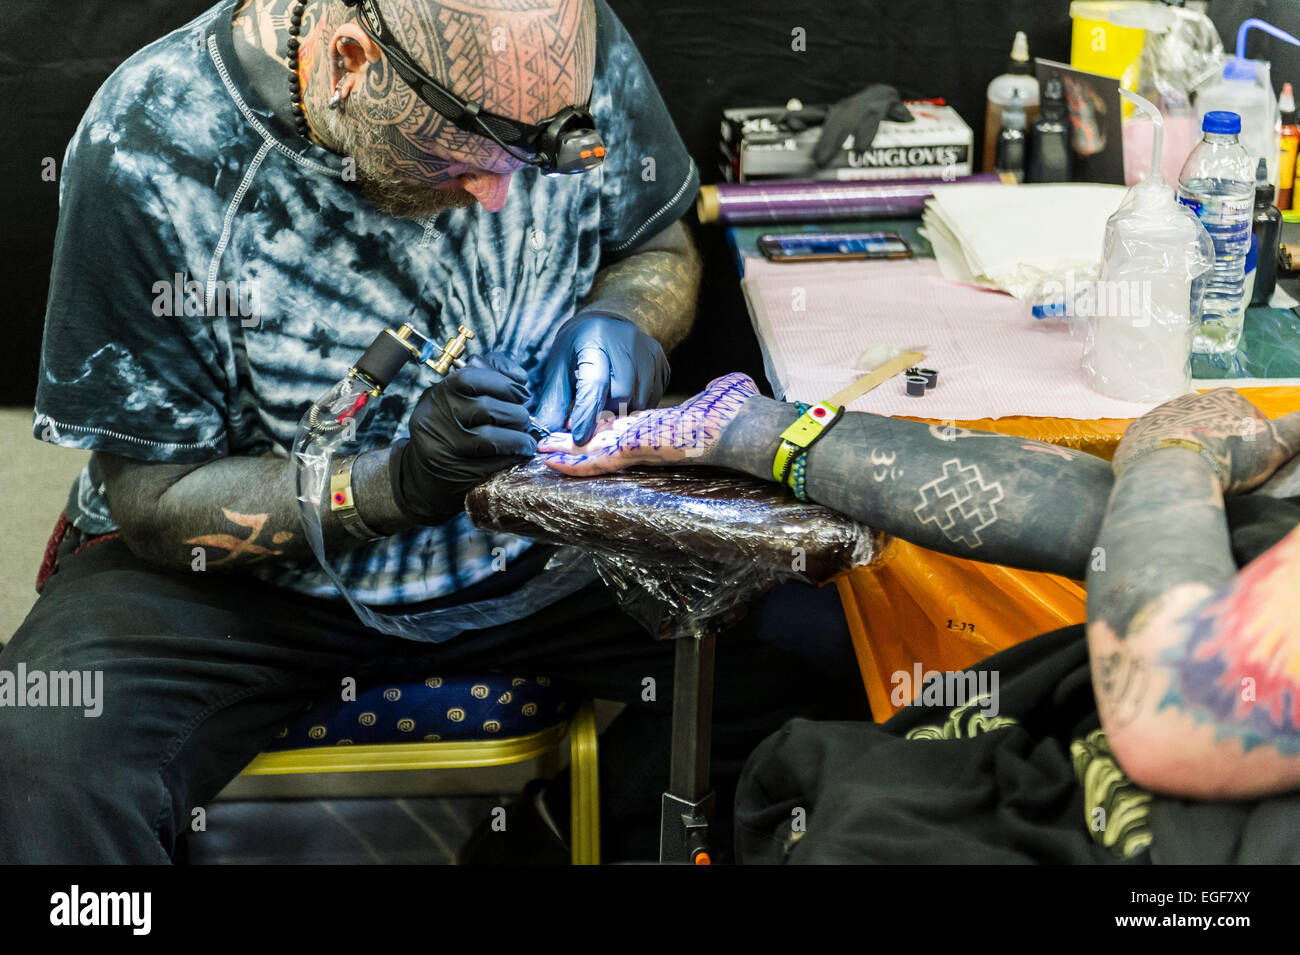 A man being tattooed on the palm of his hand at the Brighton Tattoo Convention. - Stock Image